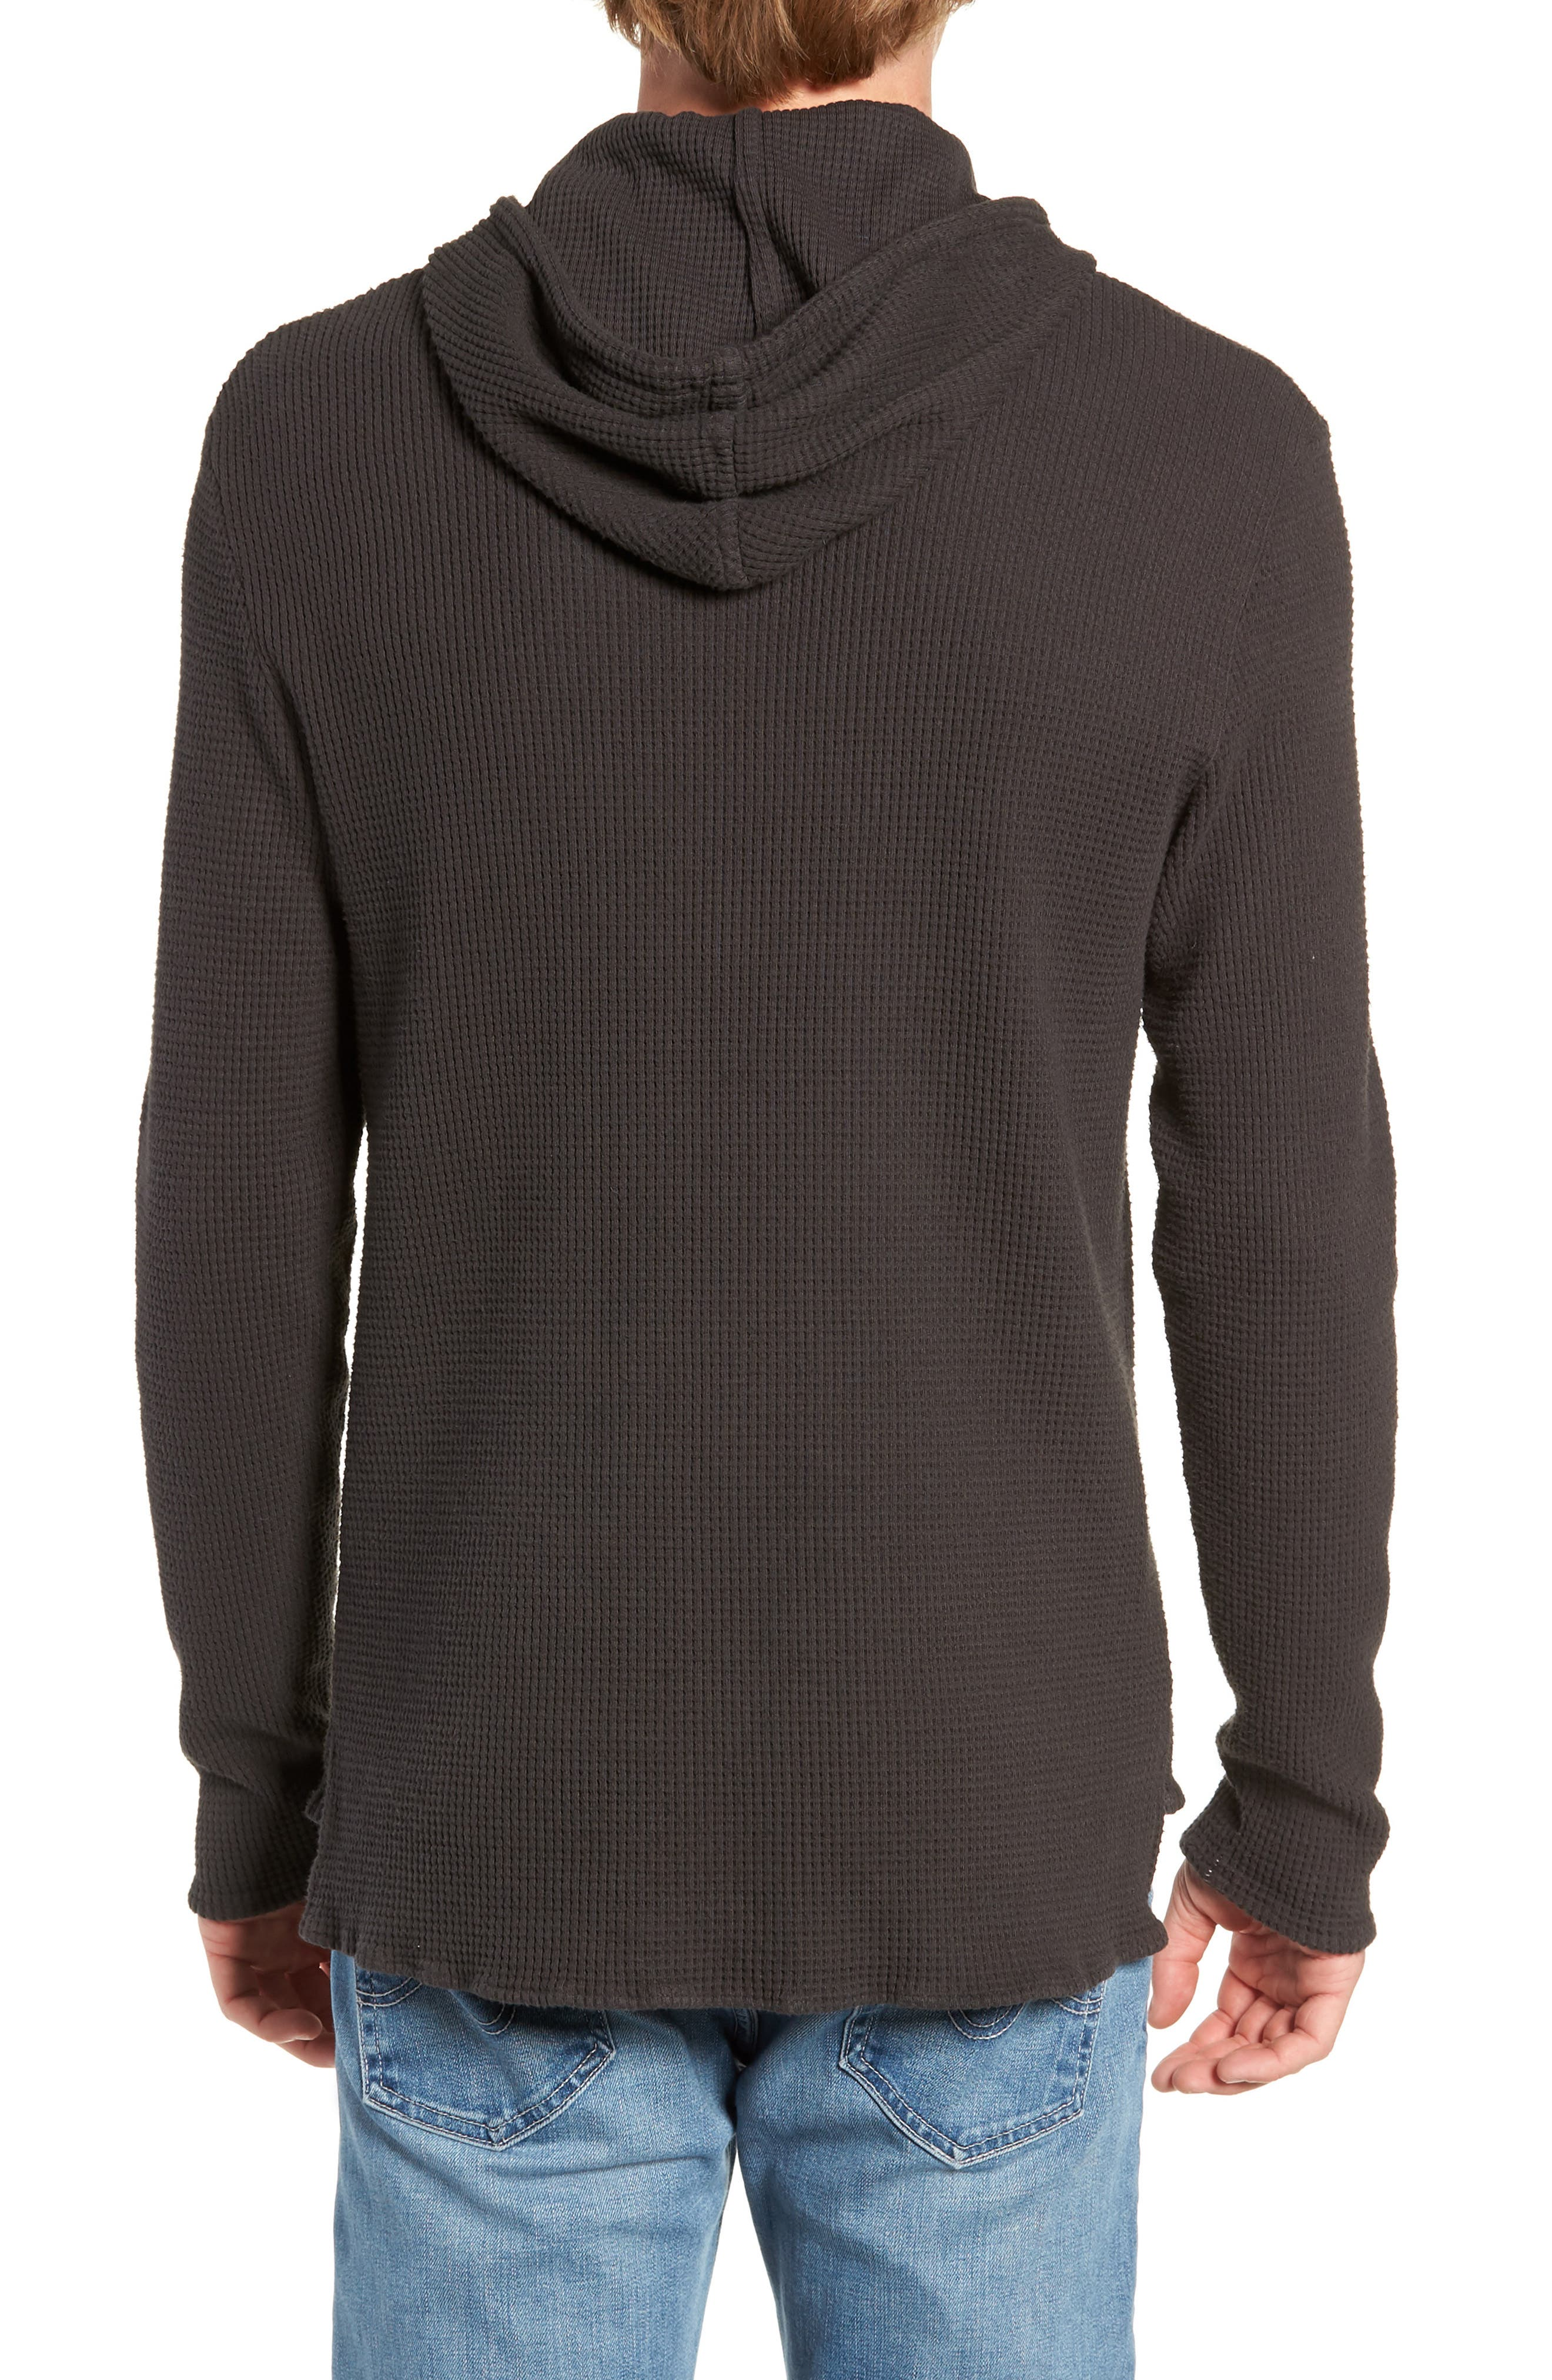 Thermal Knit Pullover Hoodie,                             Alternate thumbnail 2, color,                             020